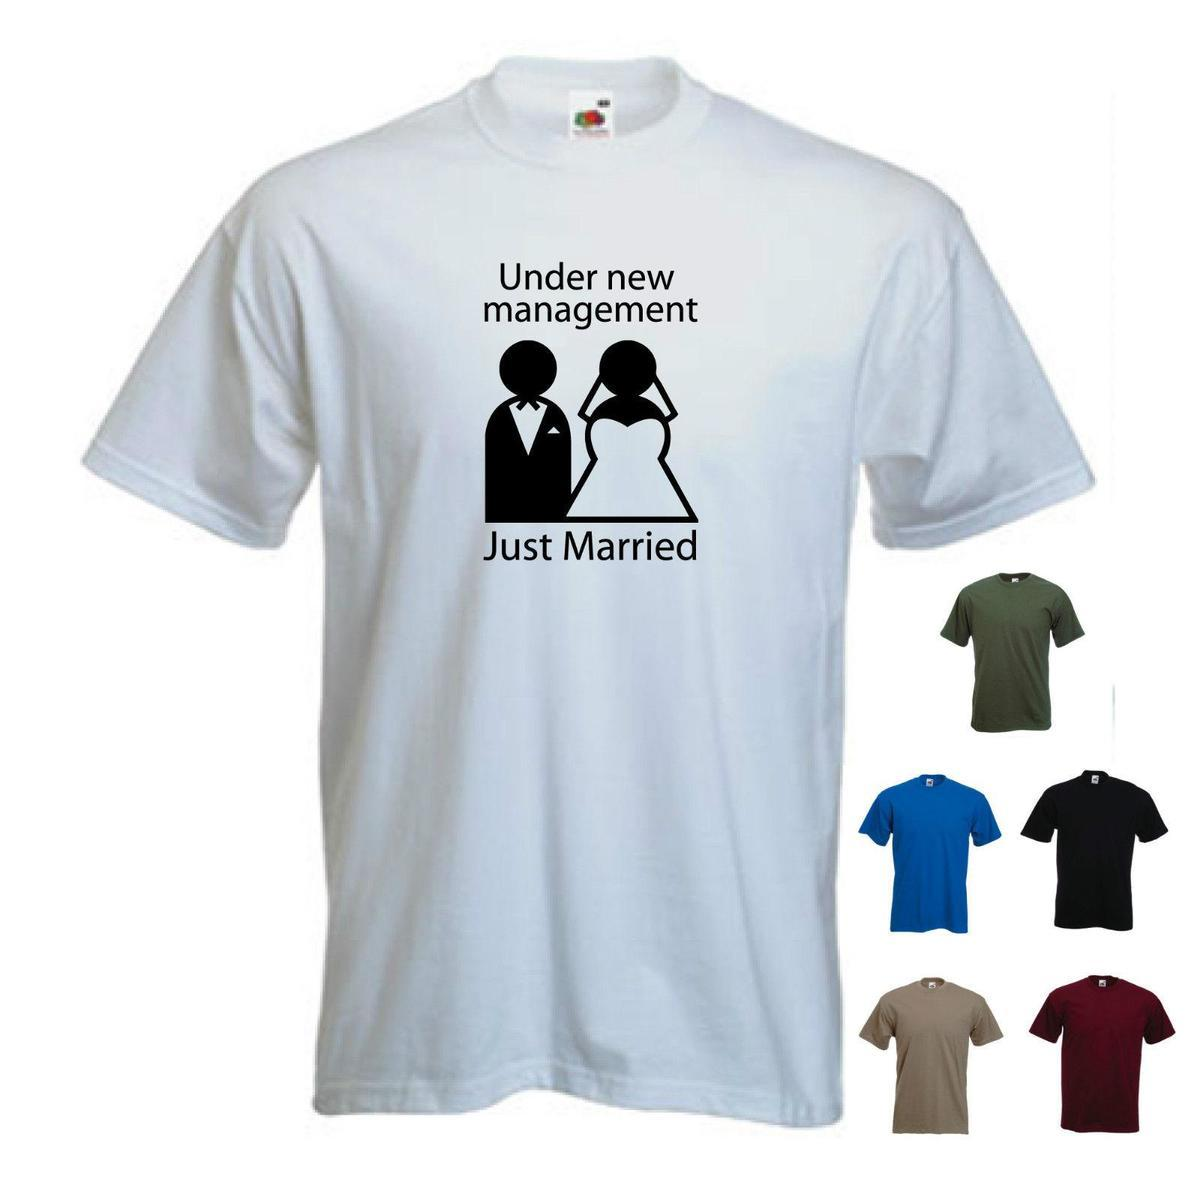 b804a97a37 'Under New Management Just Married' Mens GROOM/ MARRIAGE / WEDDING T SHIRT.  But T Shirts T Shirts Funky From Linnan007, $14.67| DHgate.Com